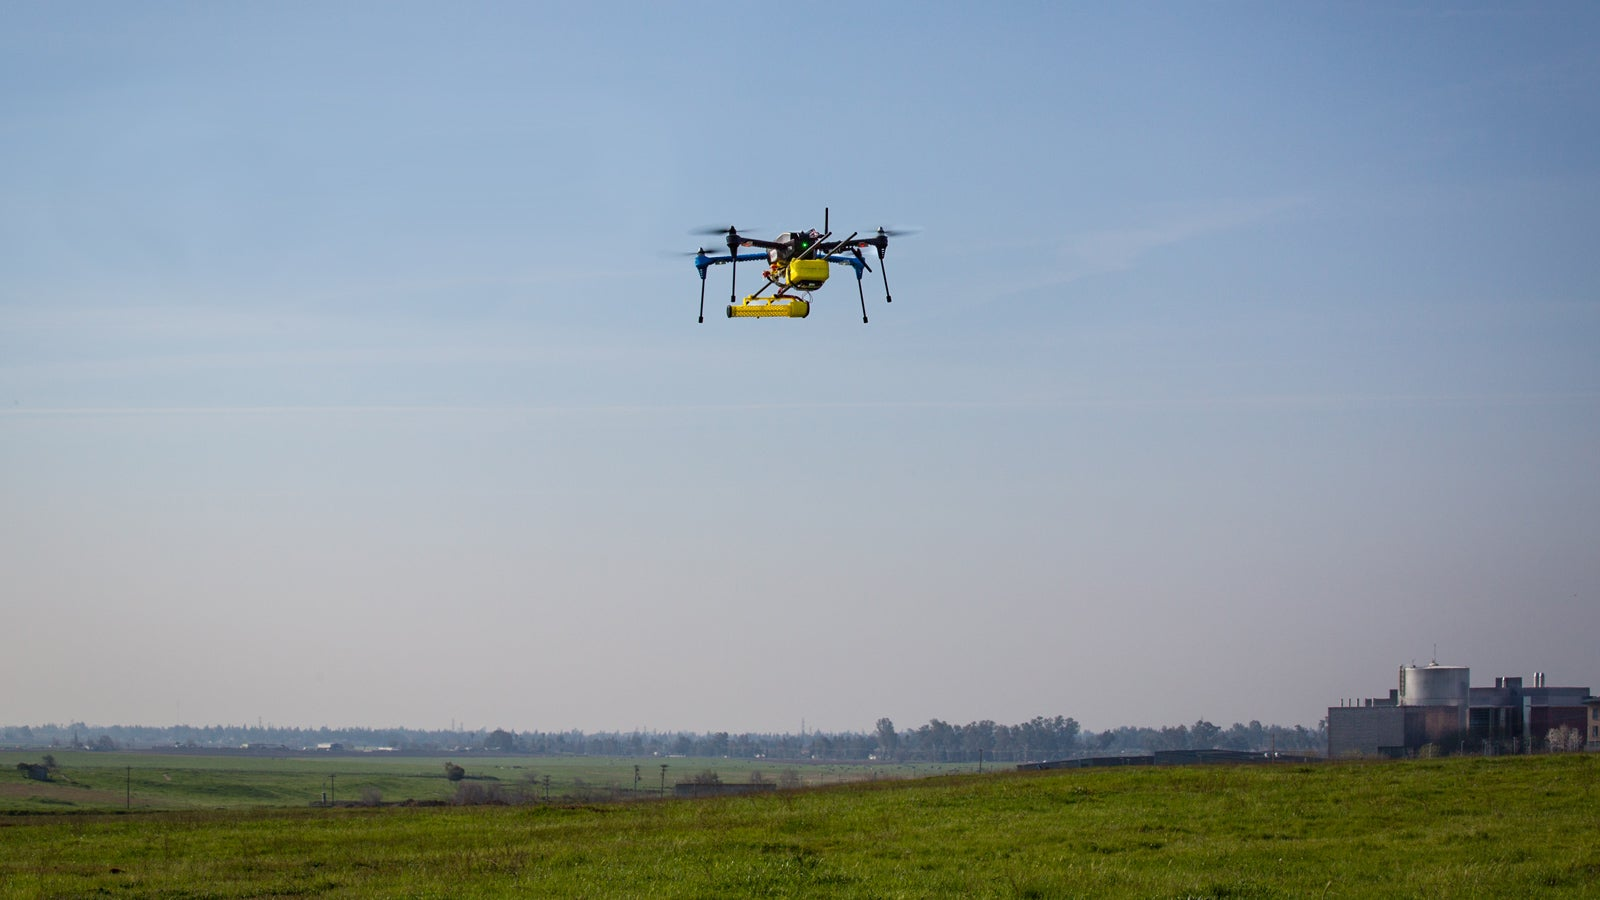 NASA Now Has A Drone That Can Sniff Out Dangerous Gas Leaks